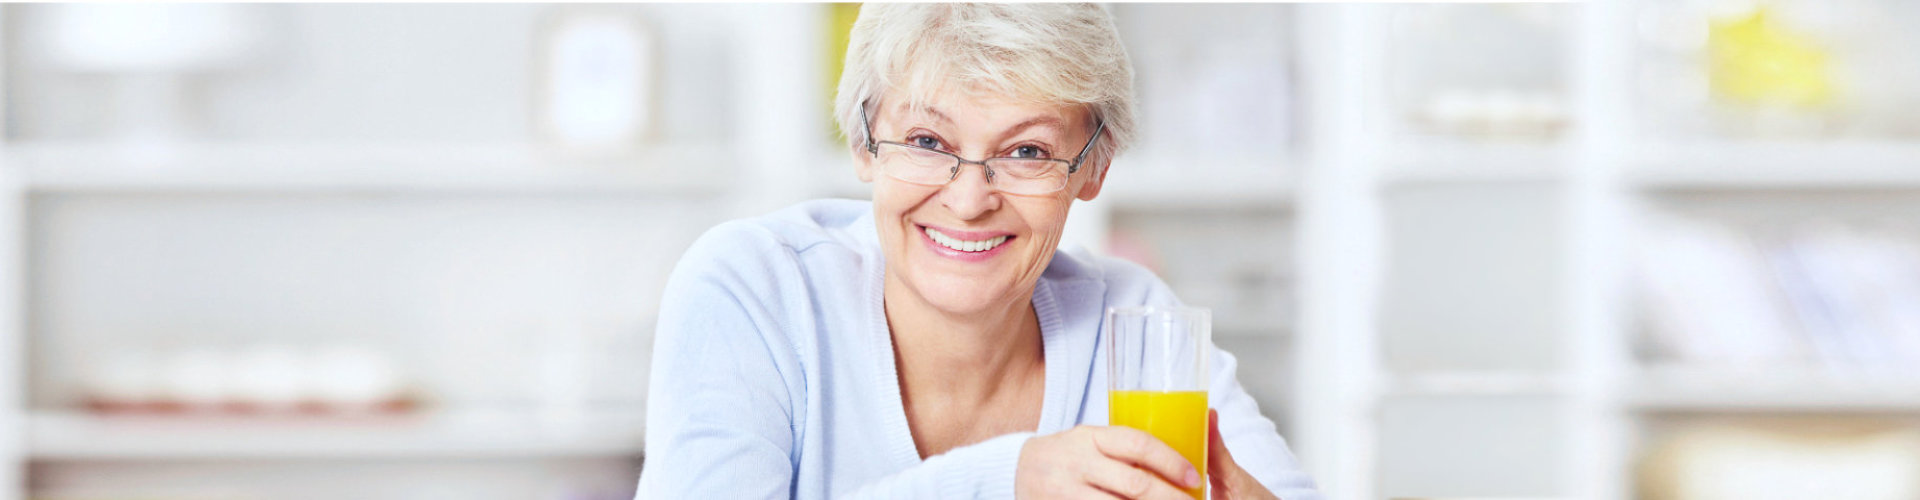 elder woman holding a glass of juice